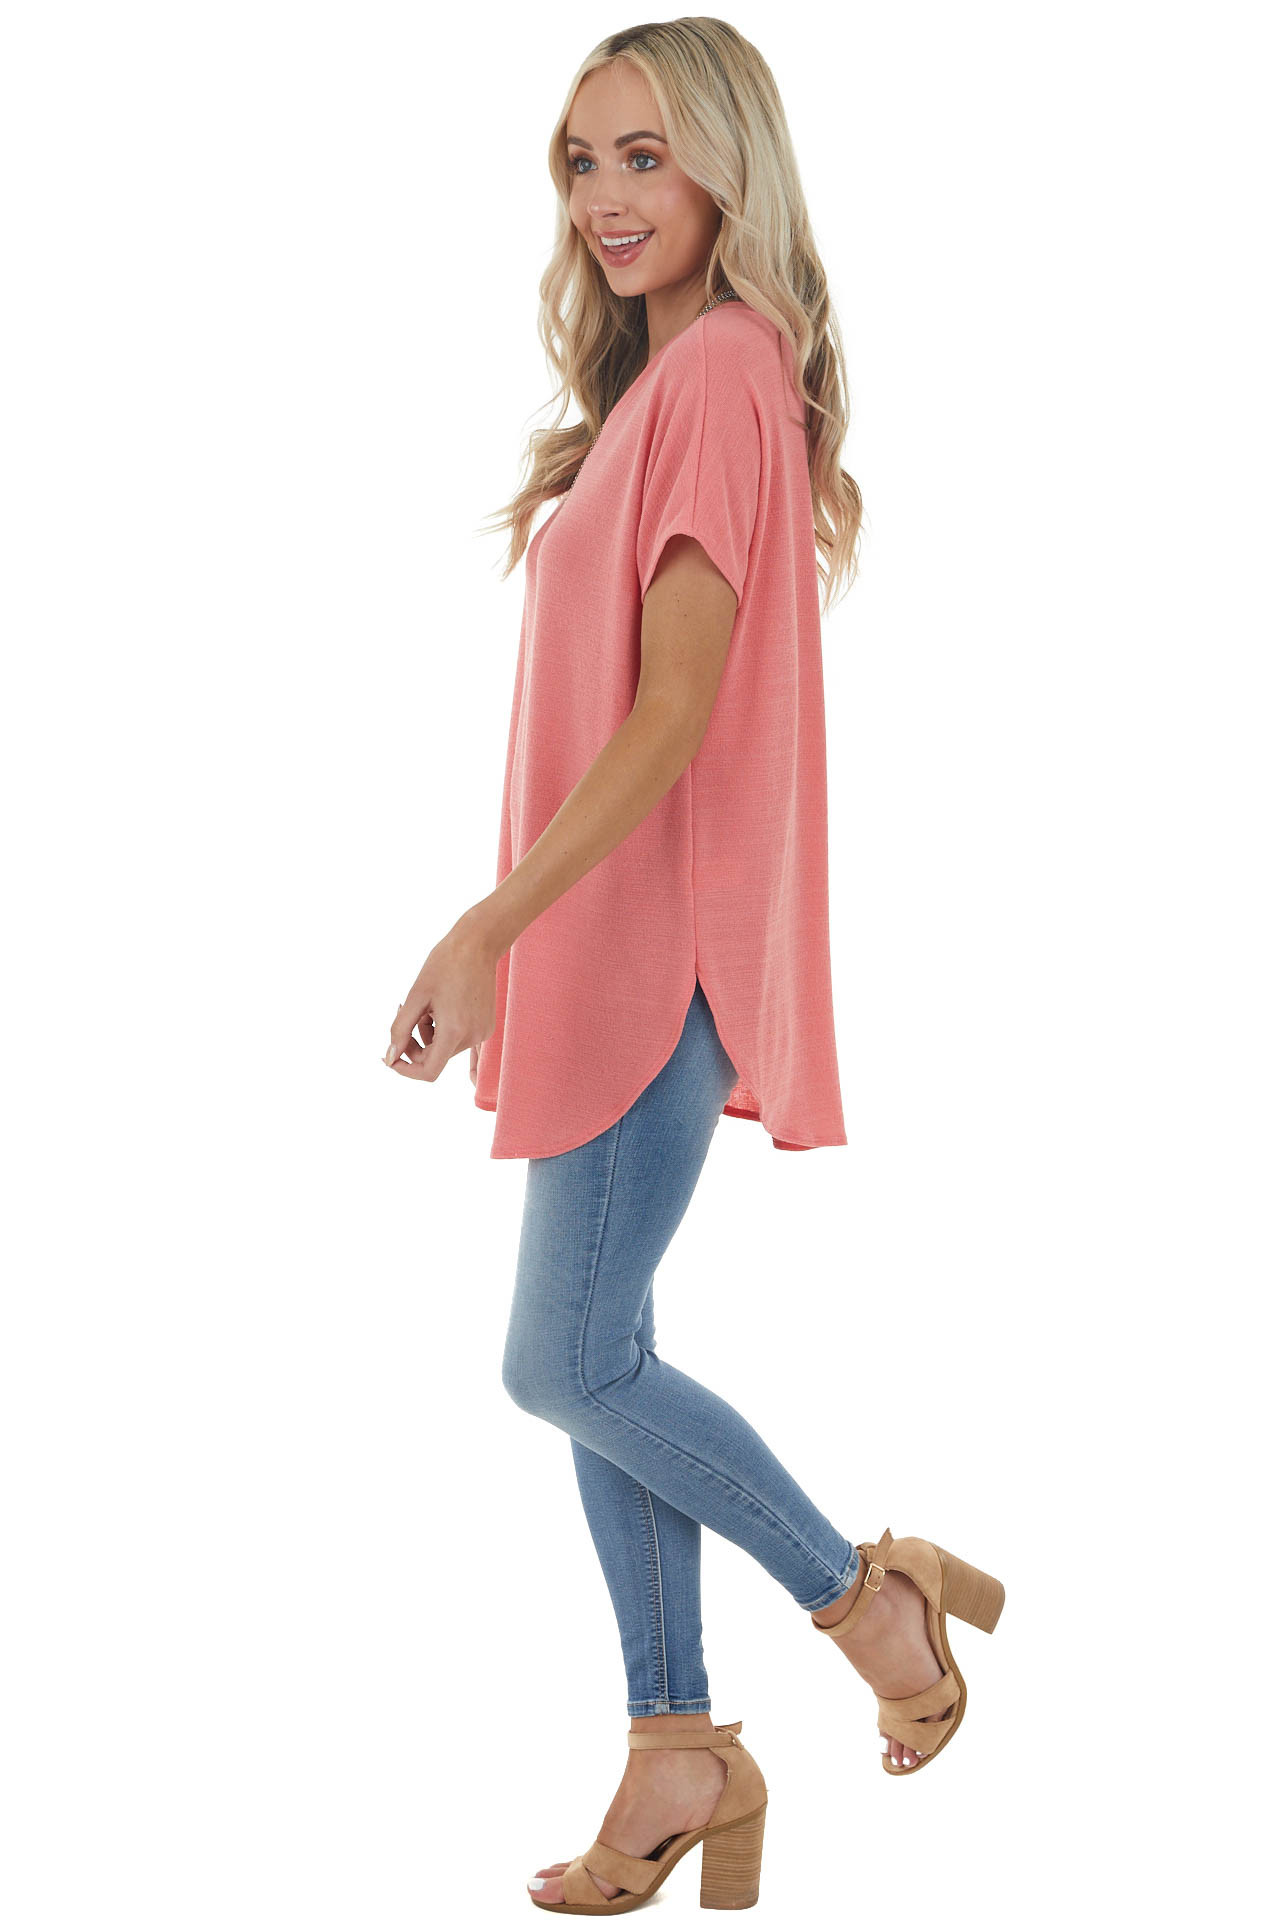 Punch Pink V Neck Knit Tunic Top with Short Sleeves